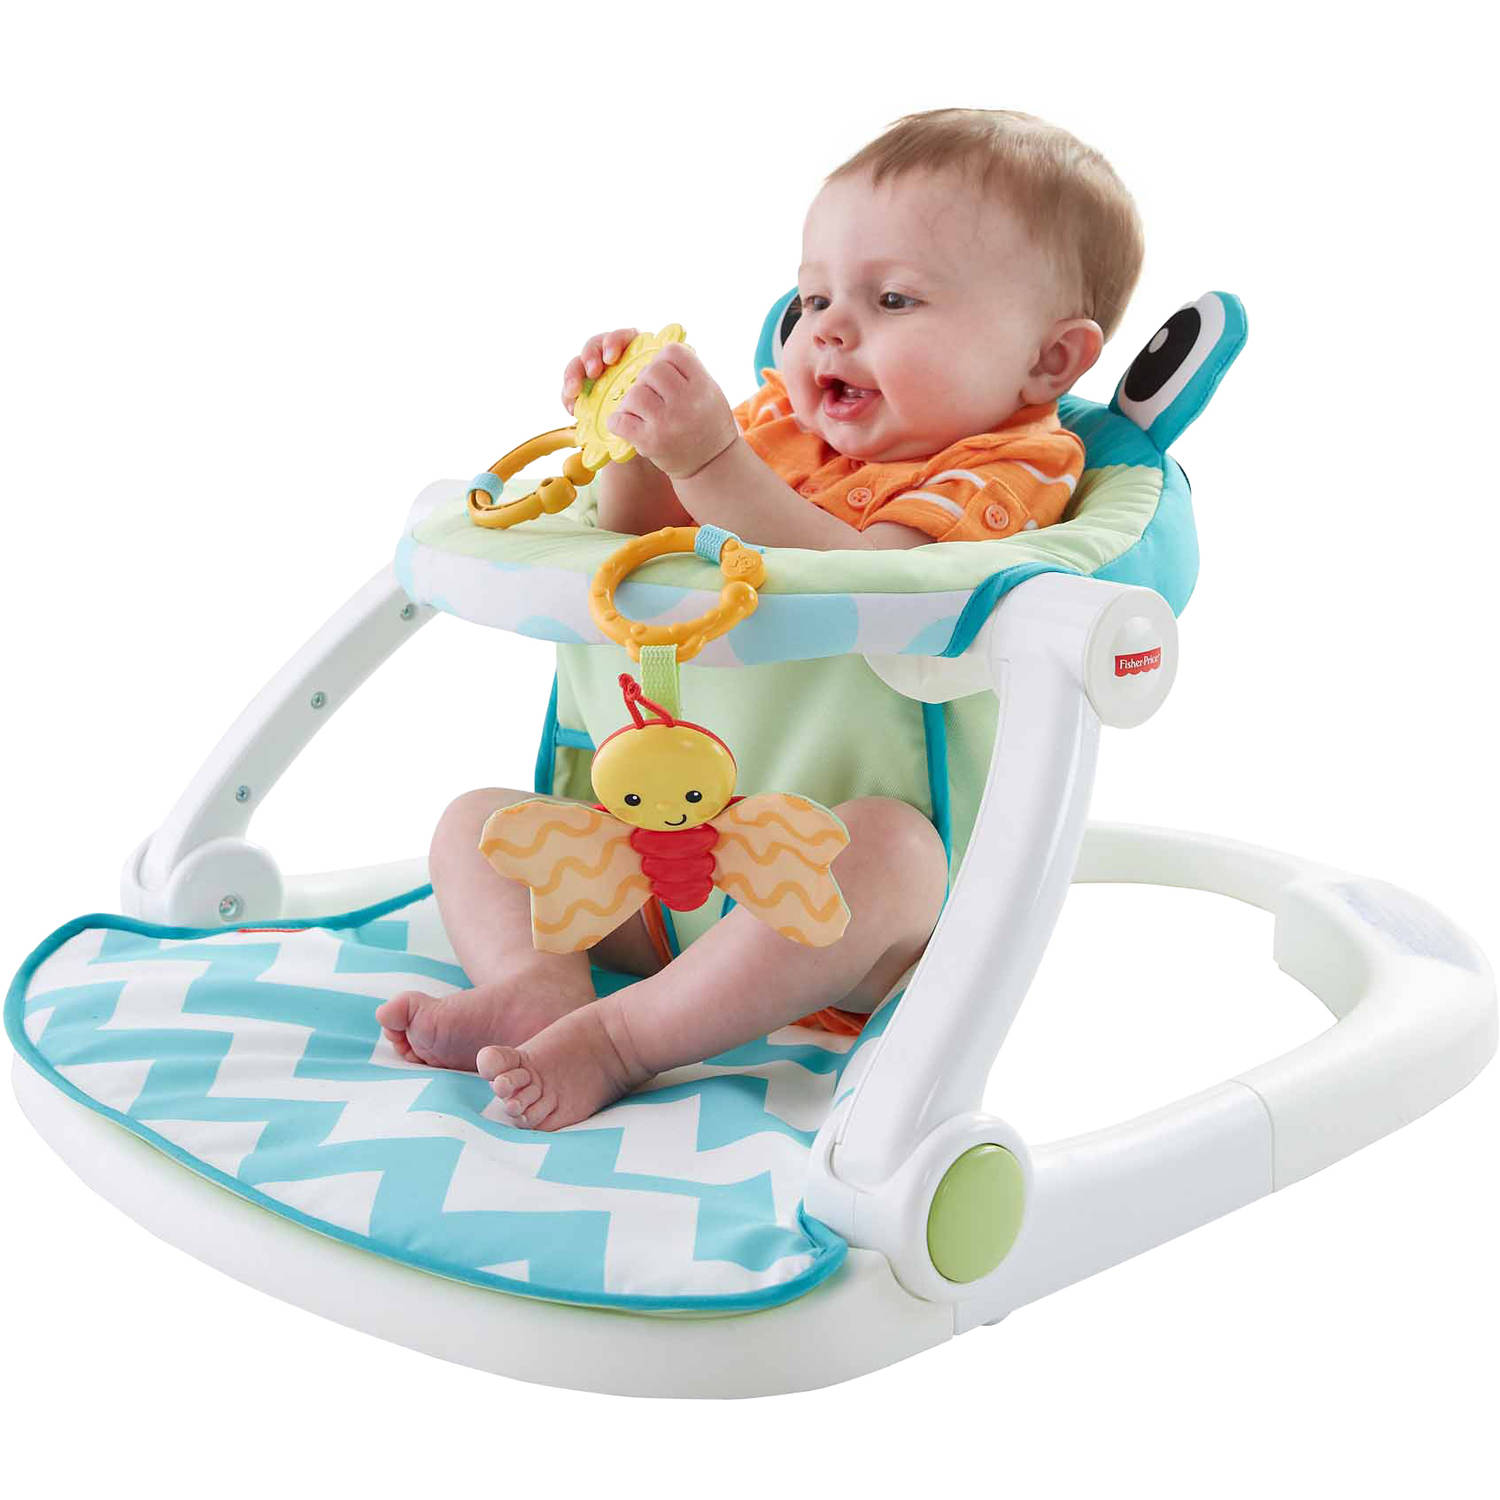 Deluxe Baby Floor Seat Activity Center Portable Chair Pad